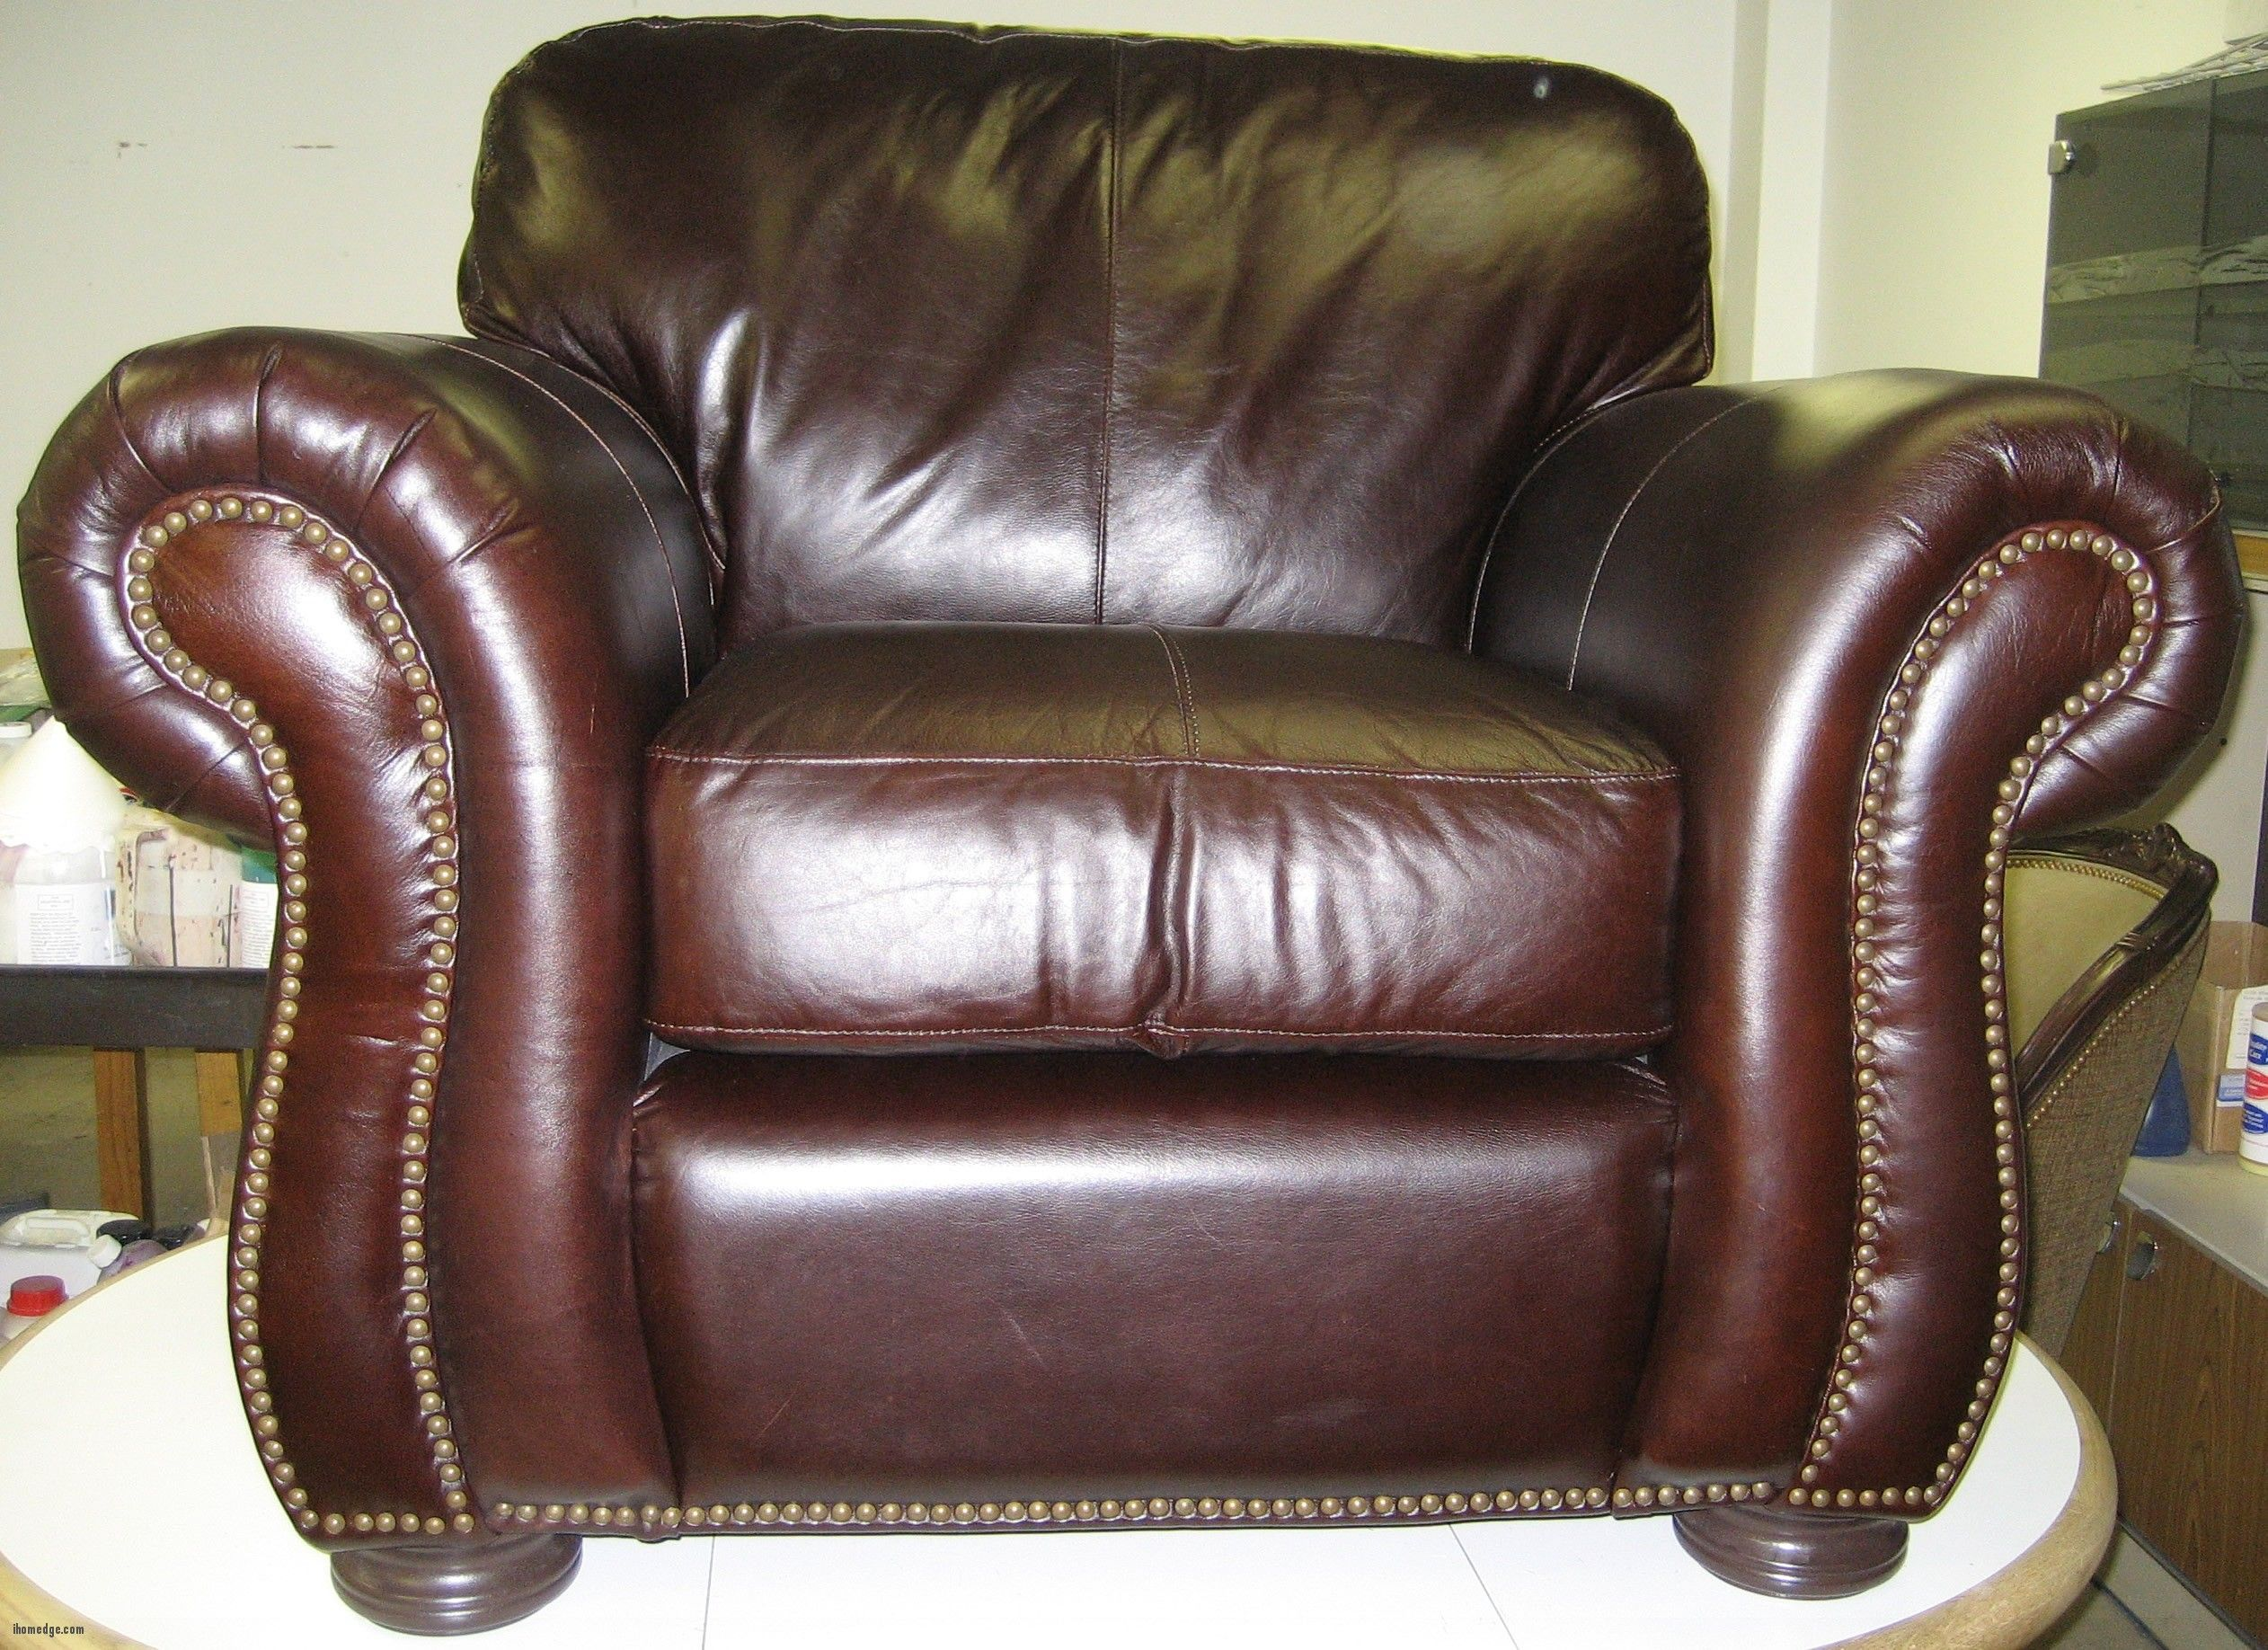 Fine Wonderful Couch Fort , Discount Furniture Stores Plano Tx Bargaintown  Furniture , Http:/